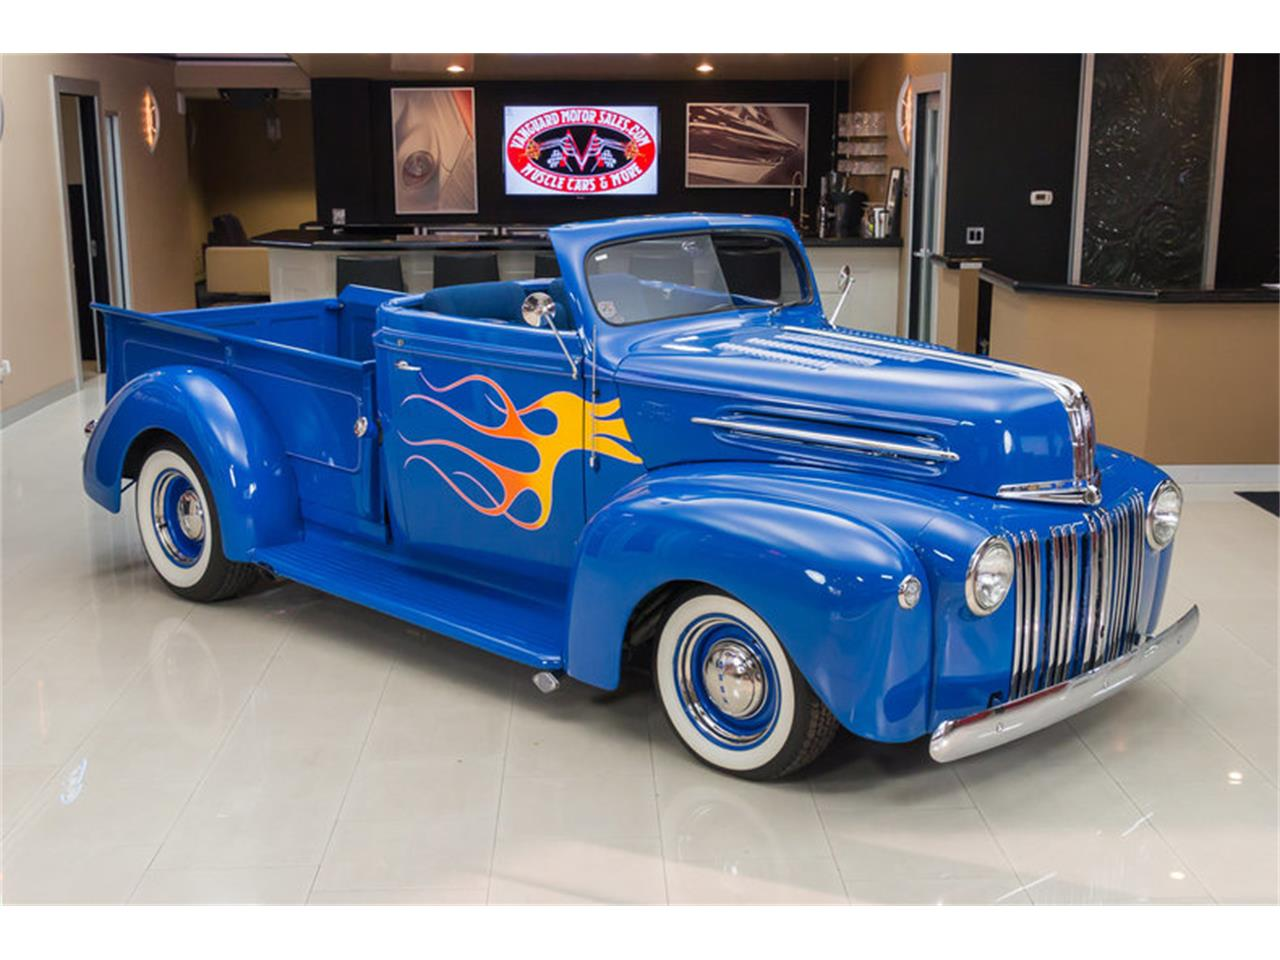 Large Picture of 1947 Ford Pickup - $34,900.00 - JIQ0